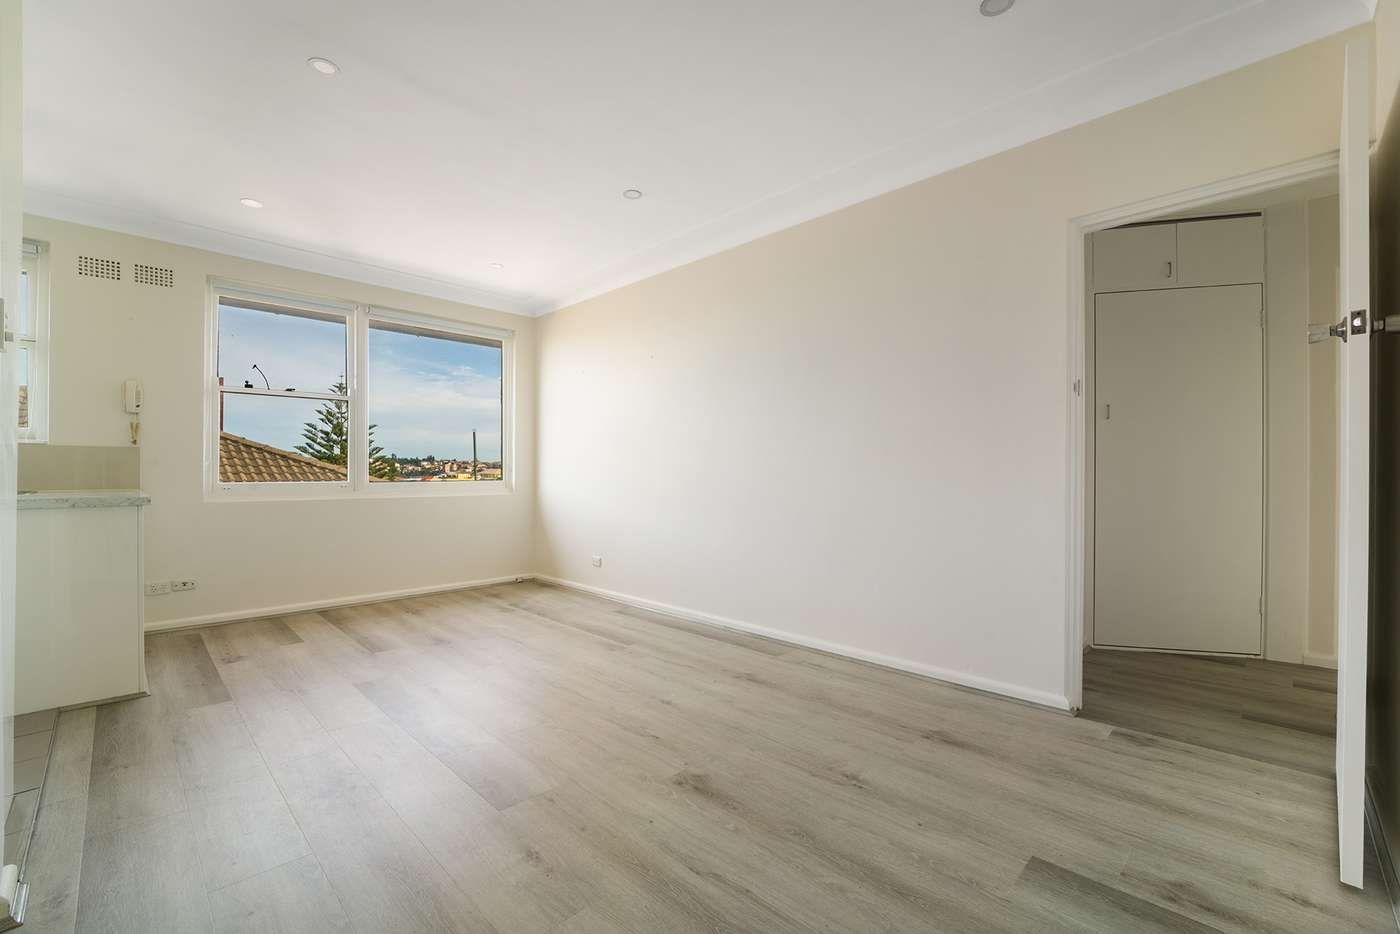 Seventh view of Homely apartment listing, 4/20 Campbell Street, Clovelly NSW 2031